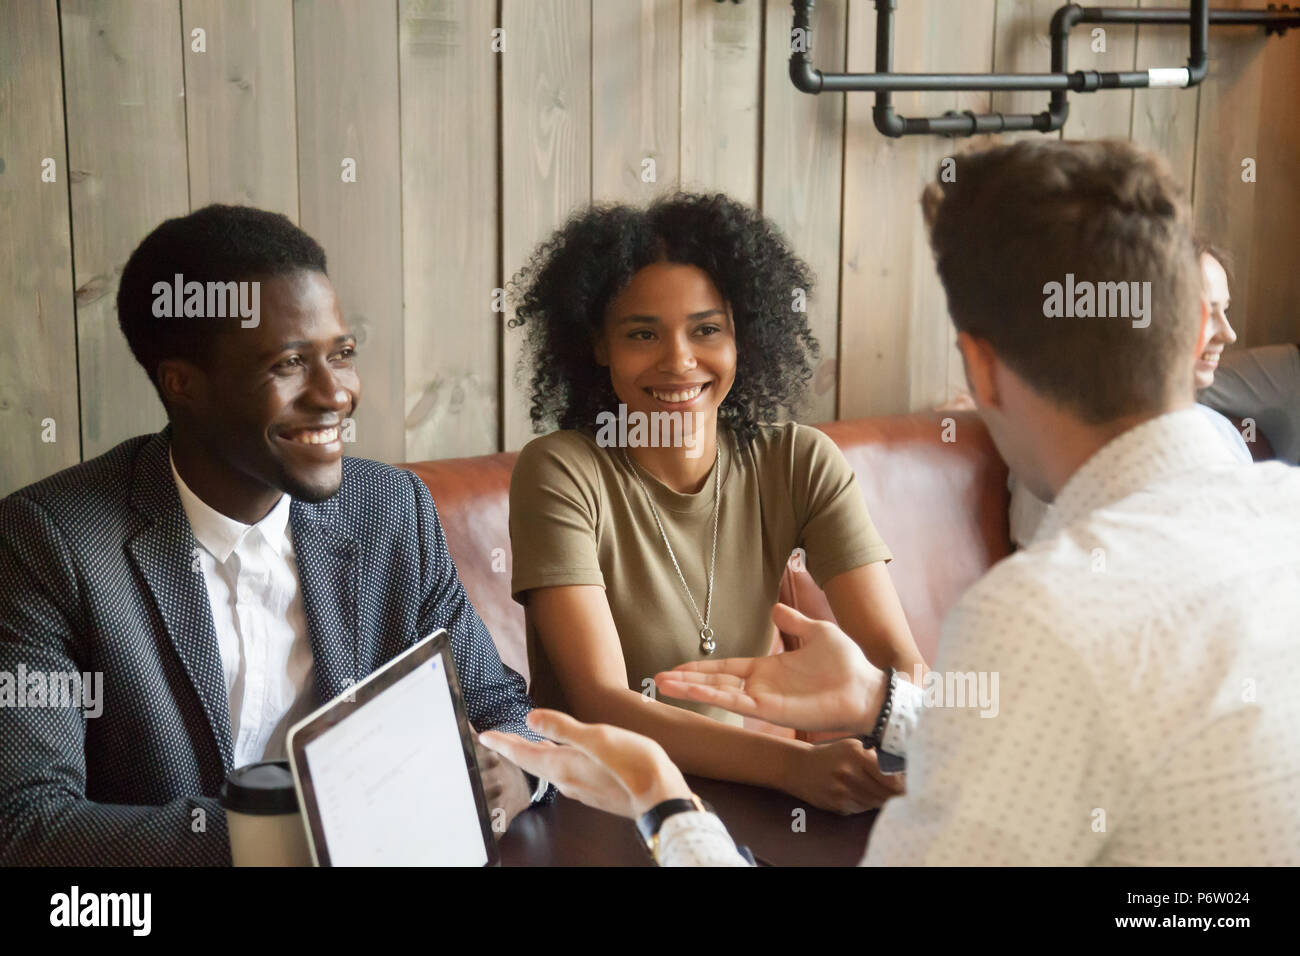 Caucasian consultant talking to black clients in coffee shop - Stock Image